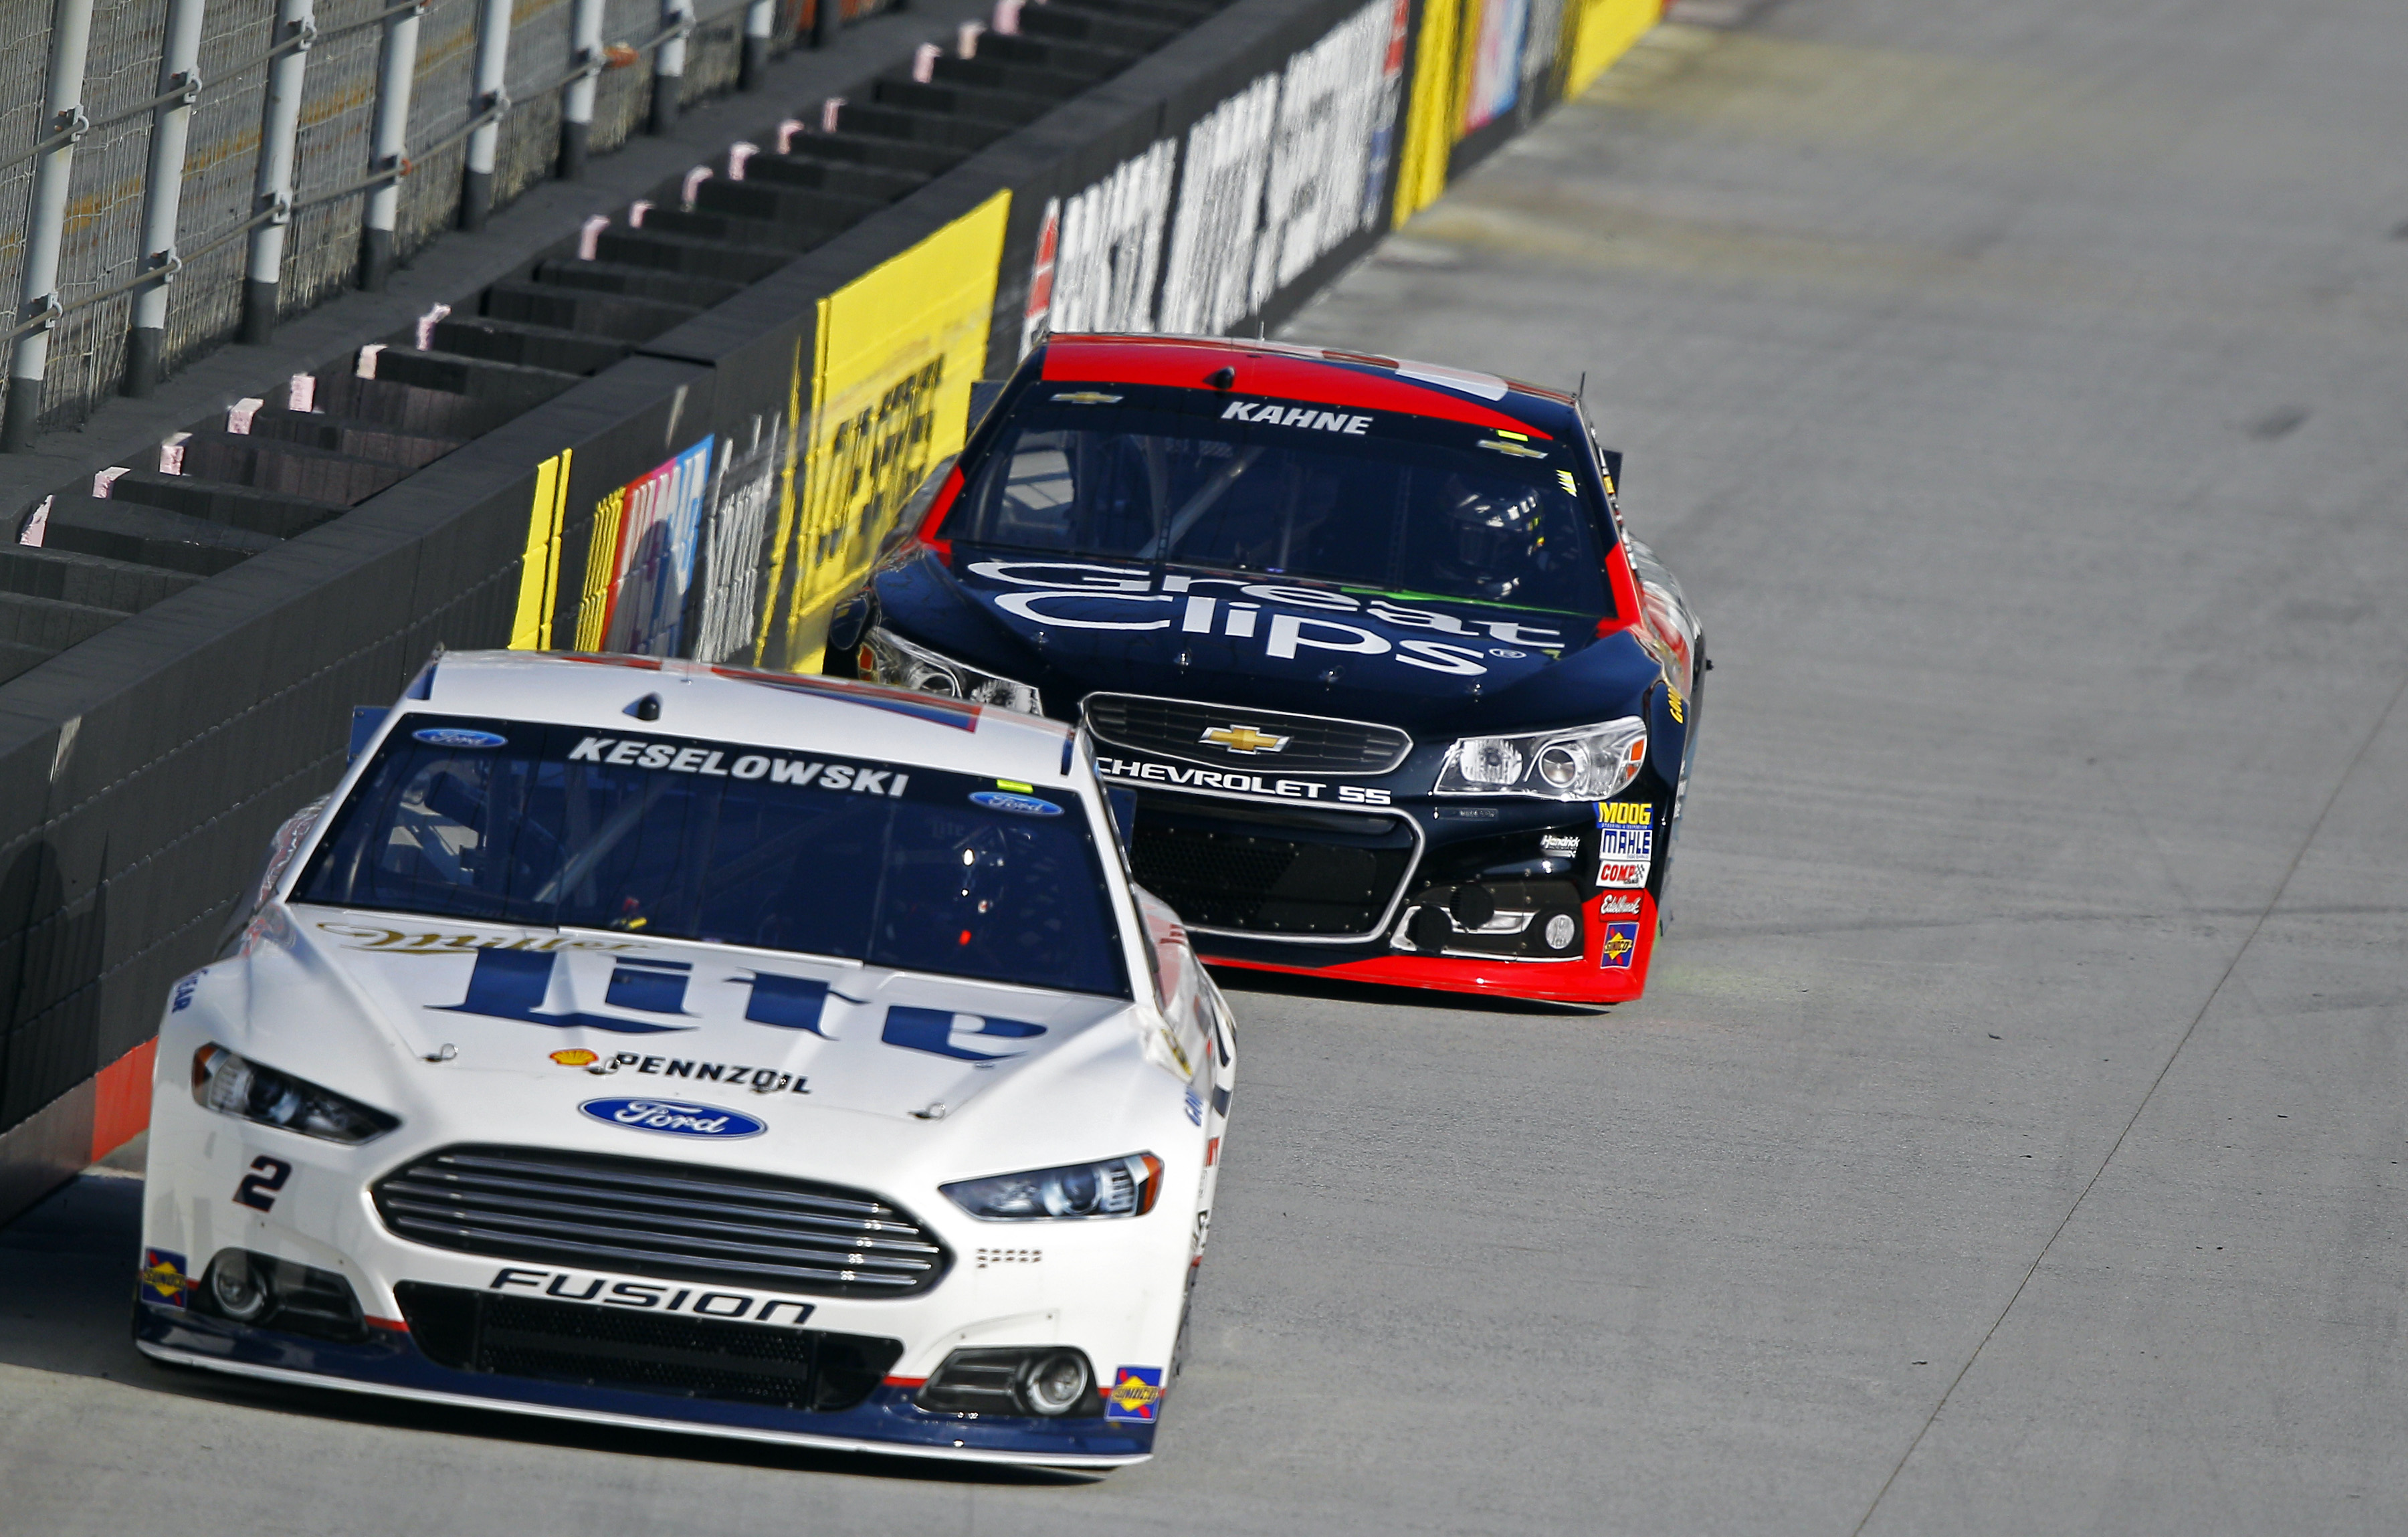 Driver Brad Keselowski leads Kasey Kahne during practice for a NASCAR Sprint Cup Series auto race at Bristol Motor Speedway on Saturday, April 18, 2015, in Bristol, Tenn. (AP Photo/Wade Payne)